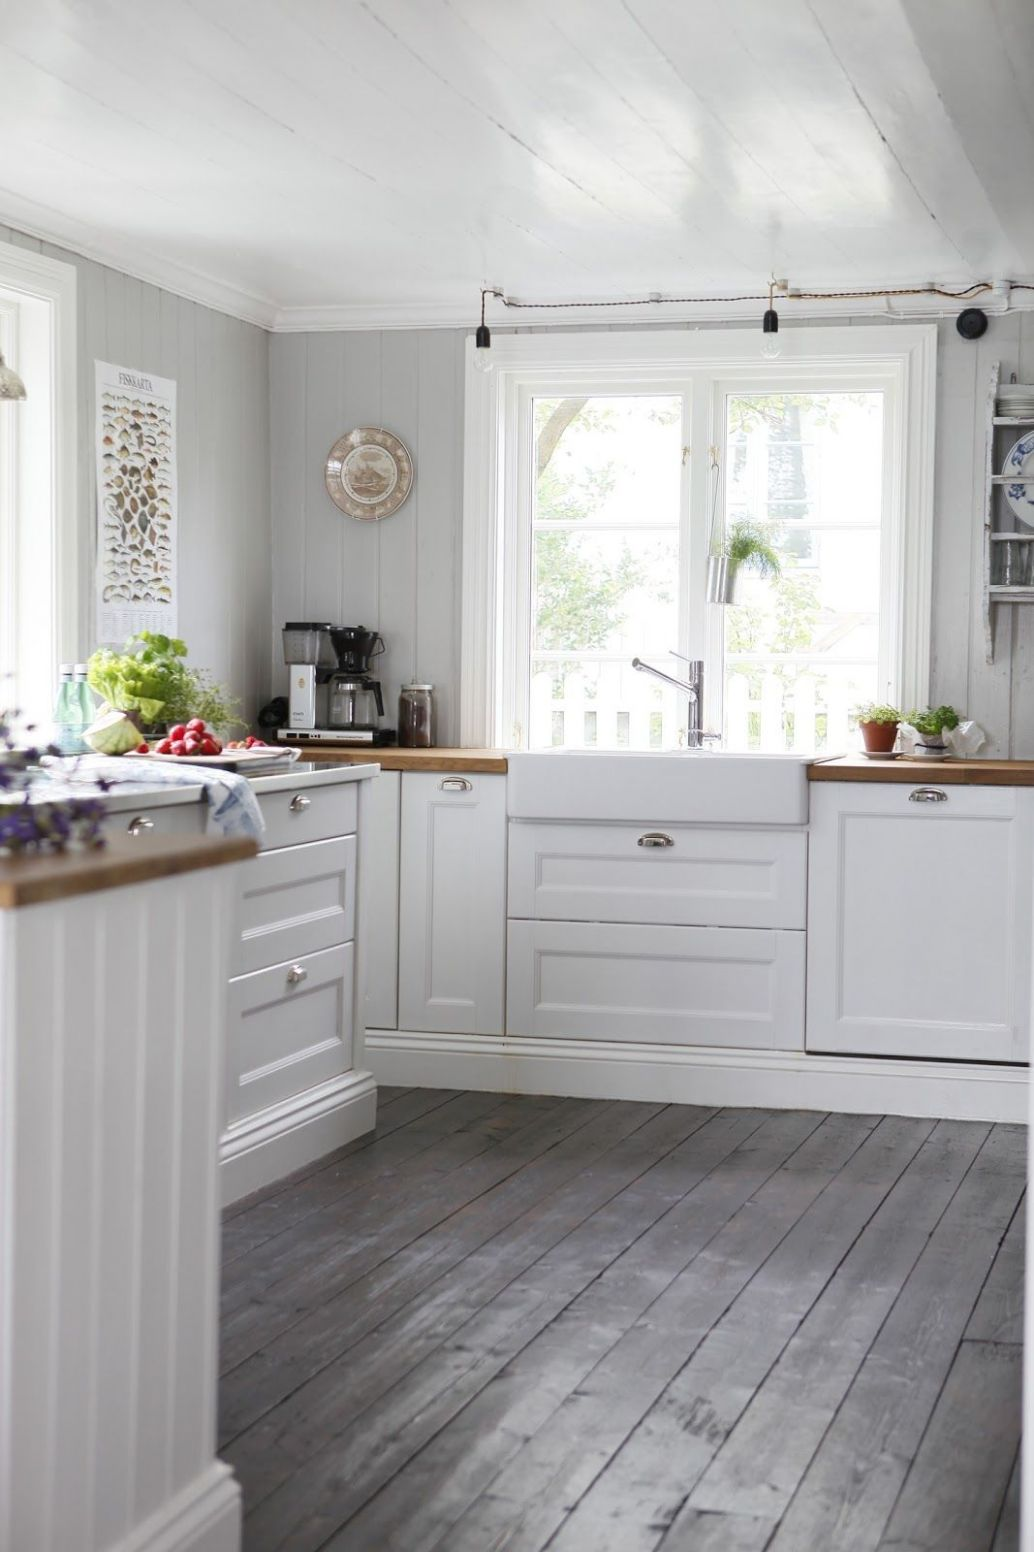 Pin by marilyn colin on kitchens in 10 | Grey kitchen floor ..